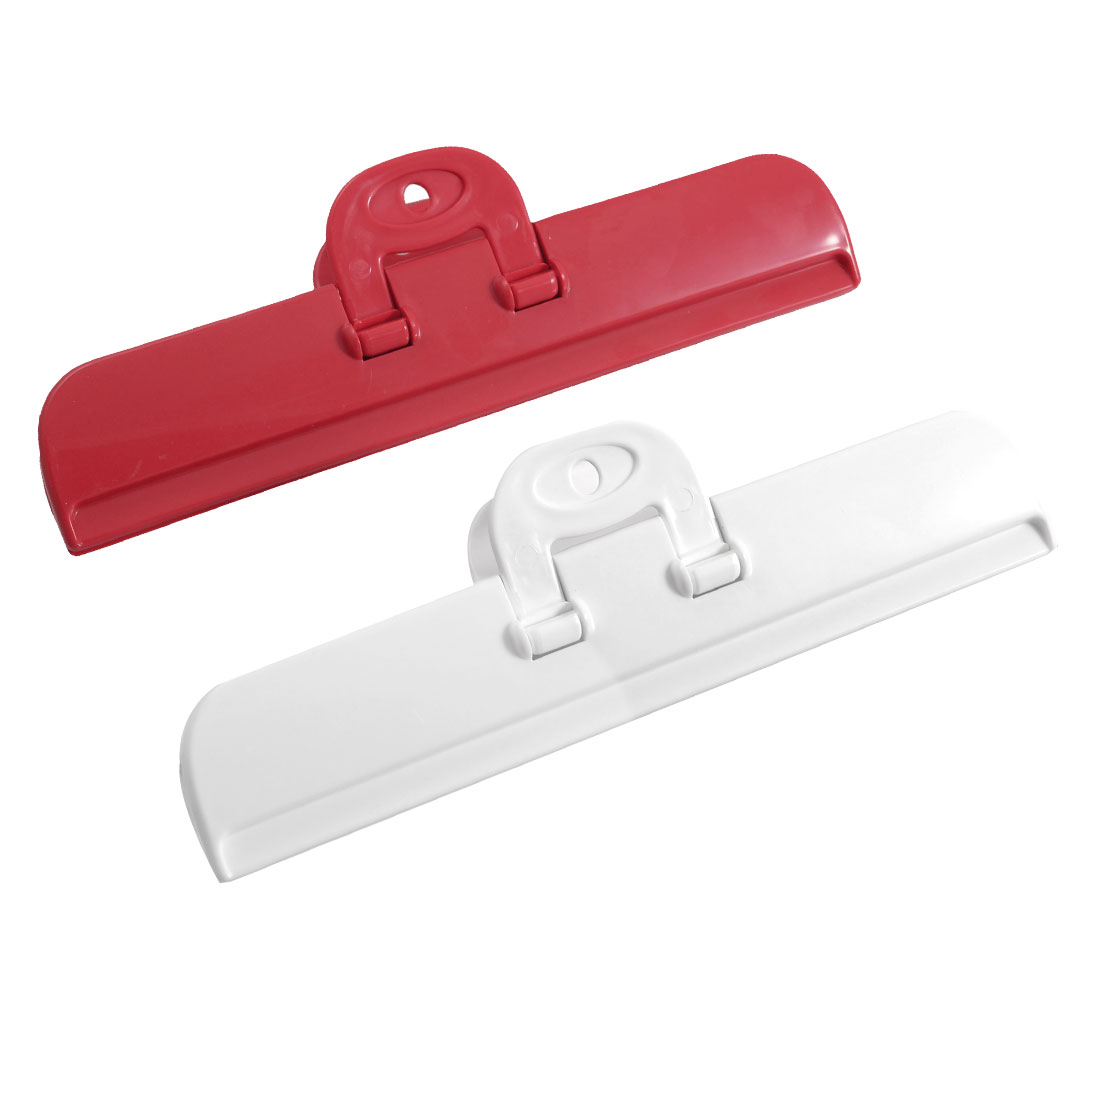 2 Pcs Red White Plastic Food Airtight Pocket Bag Sealing Clips